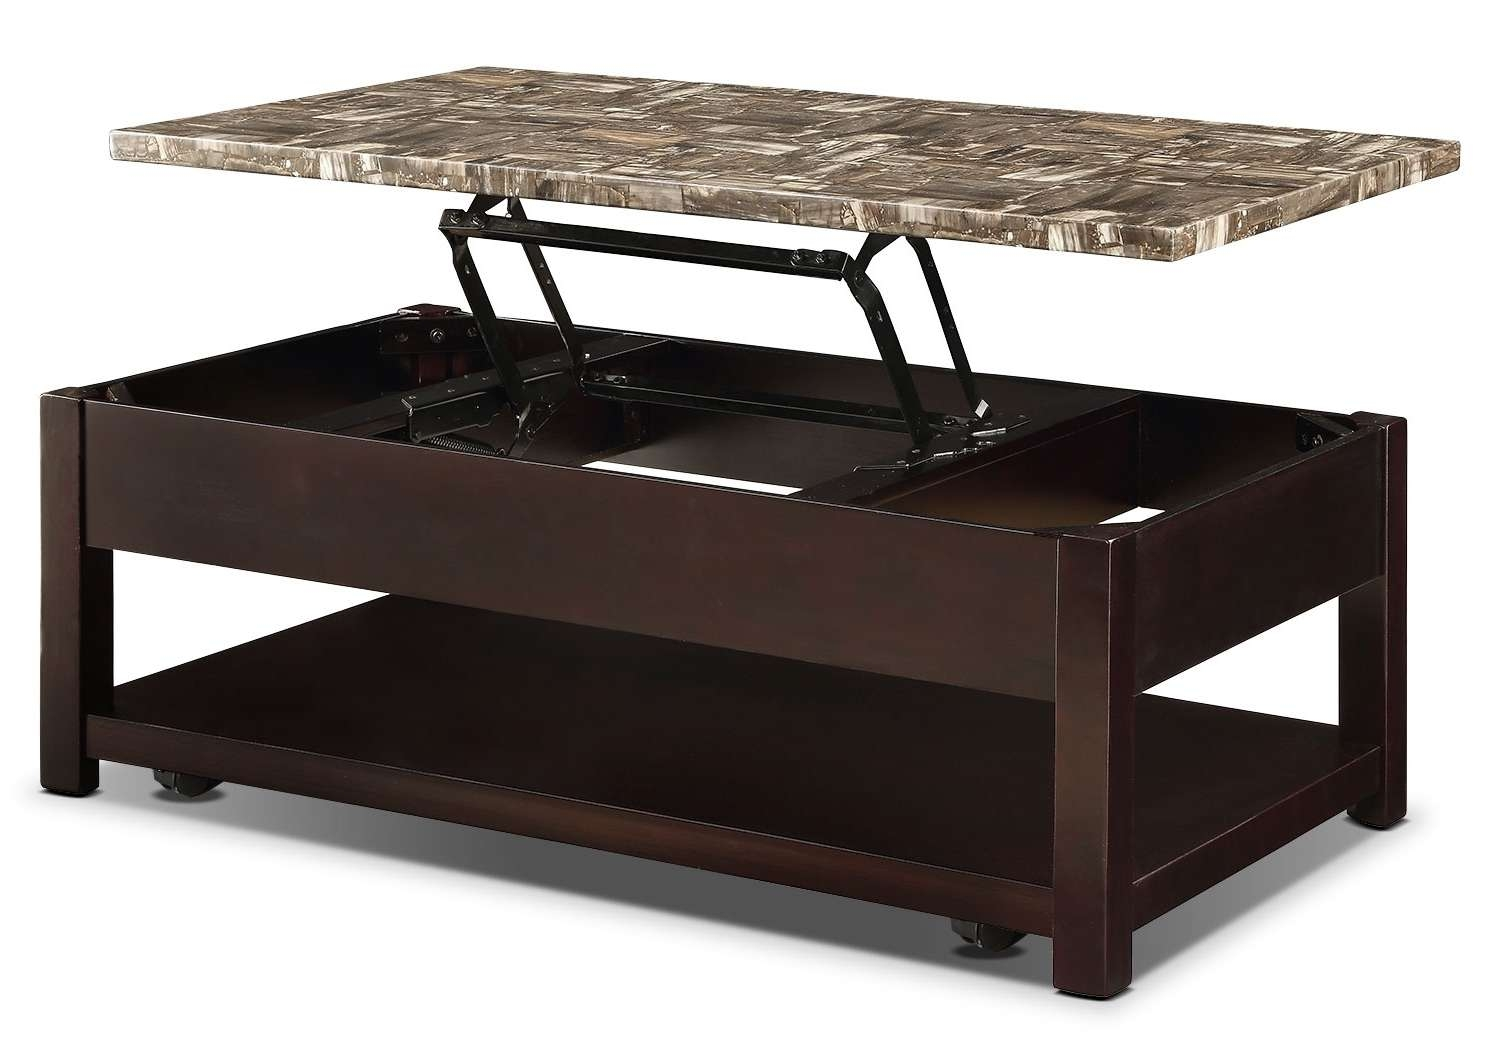 Coffee Table : Wonderful Large Square Coffee Tables Triangle For Most Recent Large Square Coffee Tables (View 9 of 20)